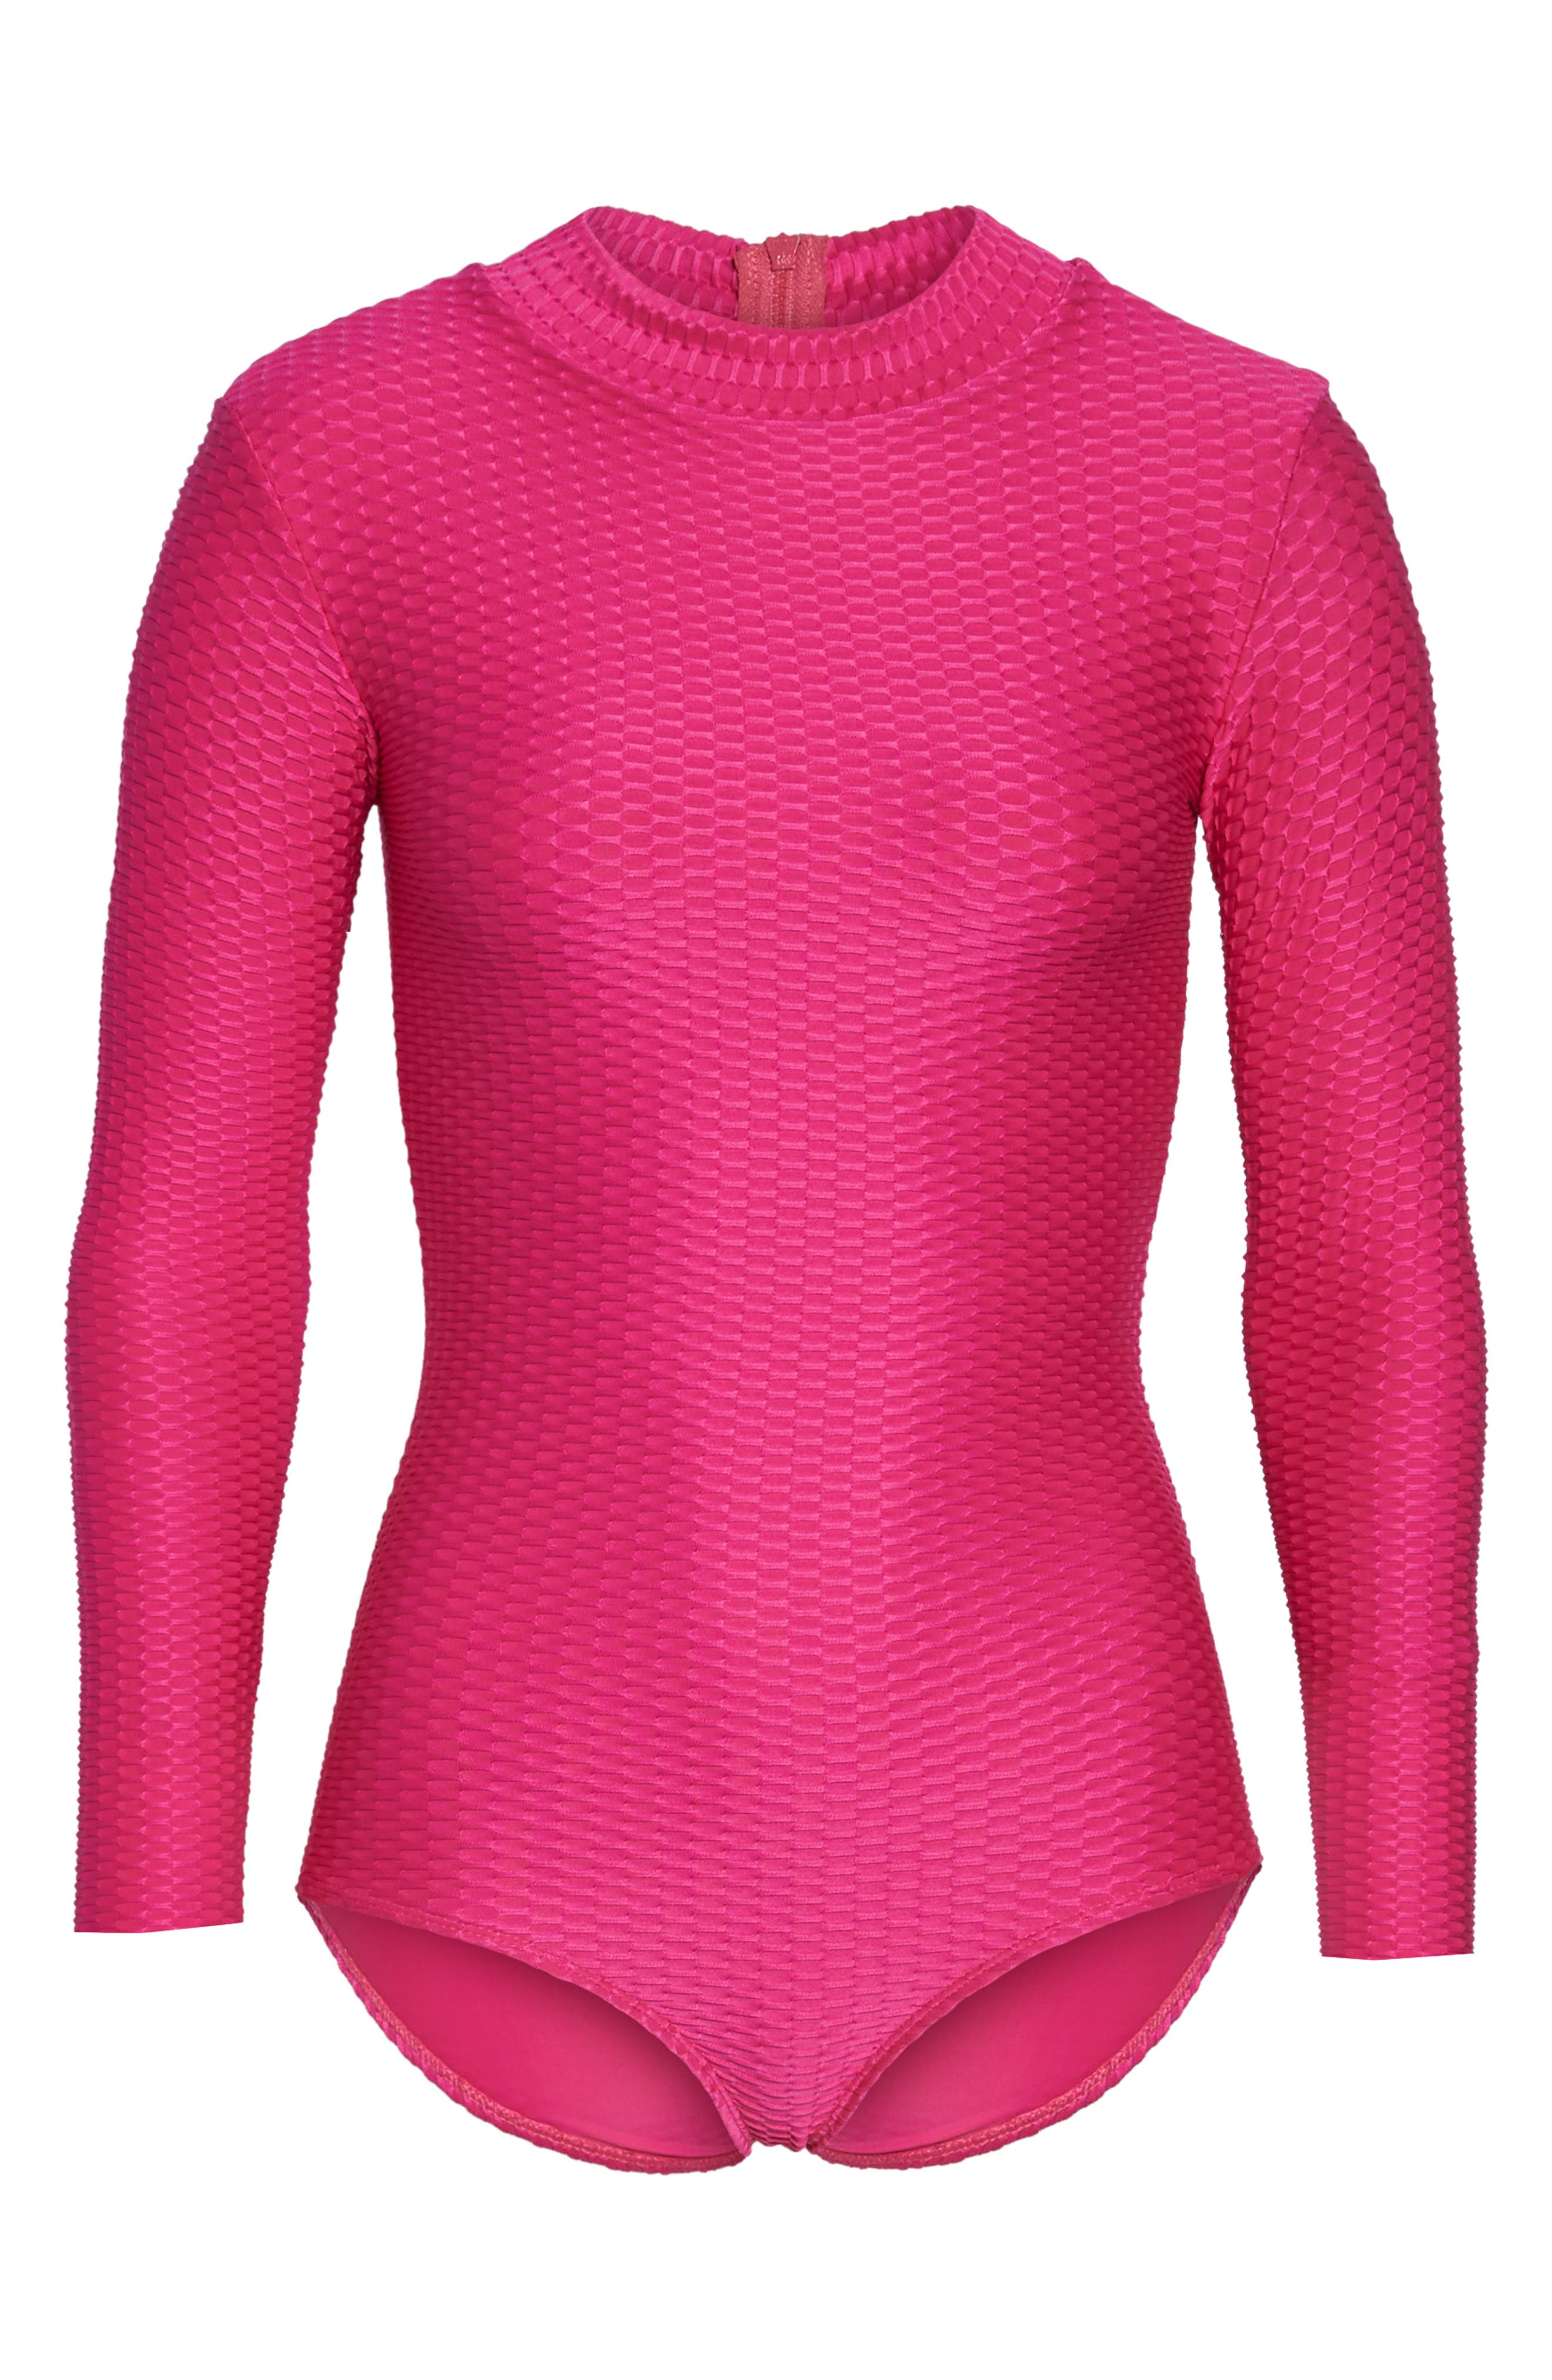 Long Sleeve One-Piece Swimsuit,                             Alternate thumbnail 6, color,                             670